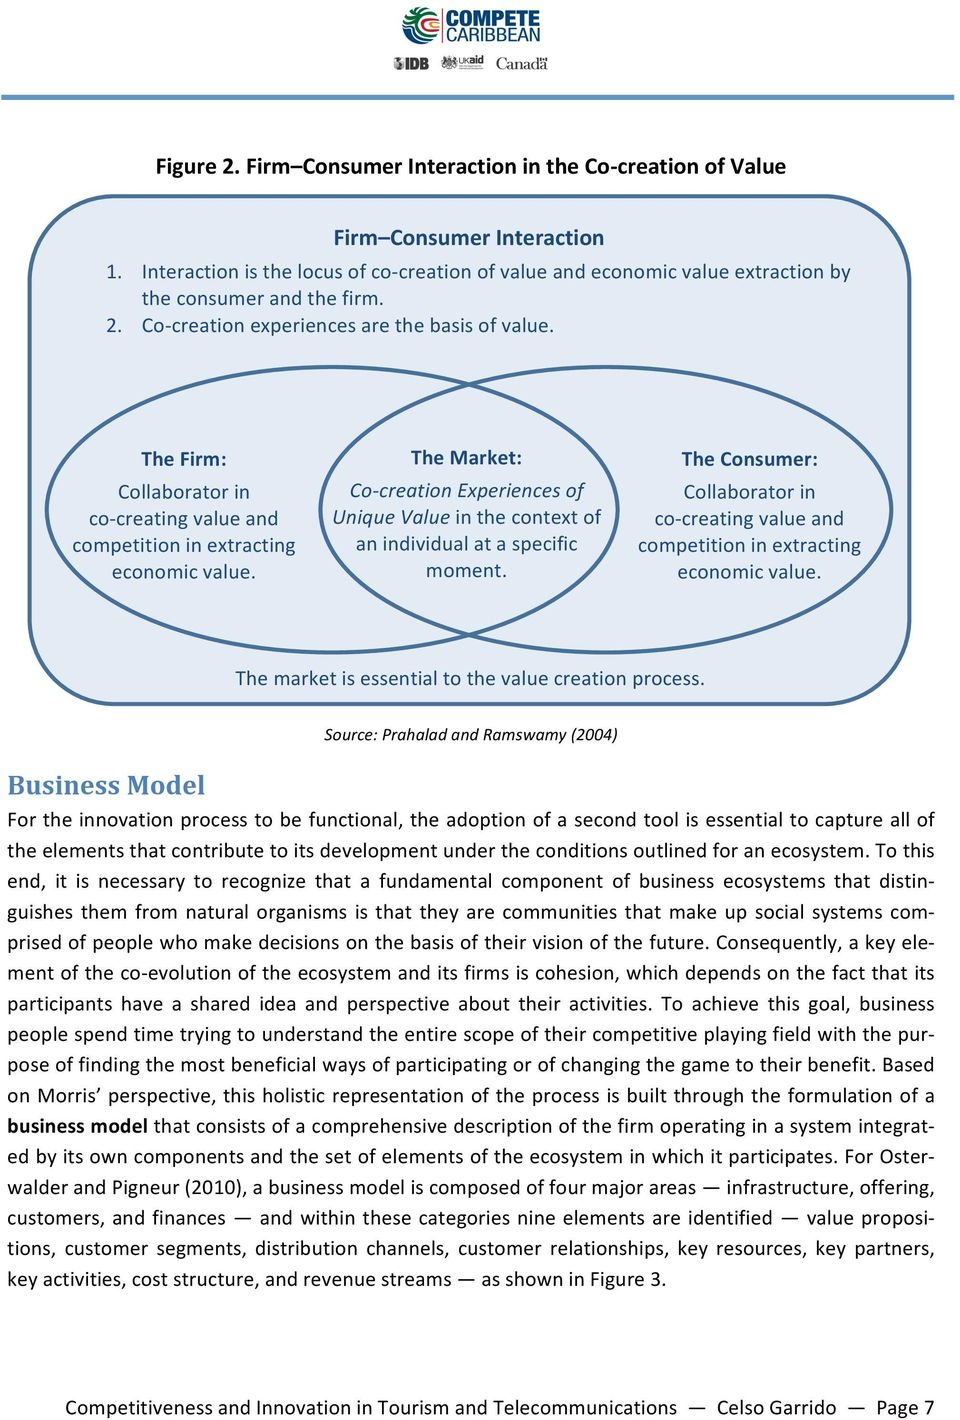 The Firm: Collaborator in co- creating value and competition in extracting economic value. The Market: Co- creation Experiences of Unique Value in the context of an individual at a specific moment.